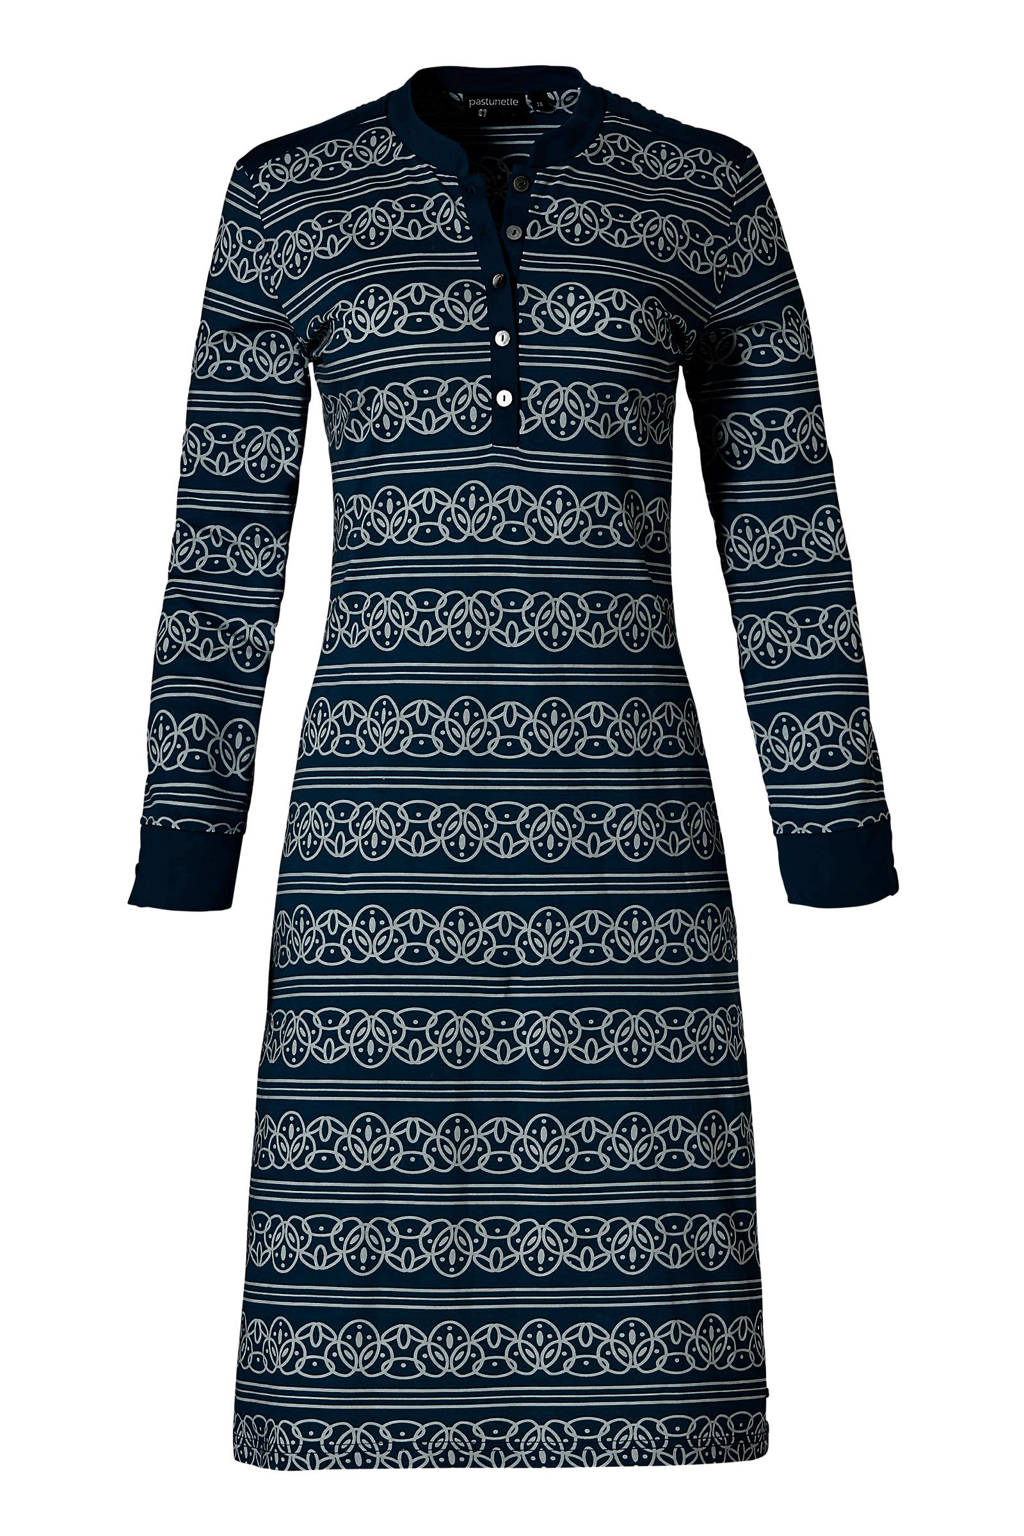 Pastunette Deluxe nachthemd met all over print donkerblauw/wit, Donkerblauw/wit